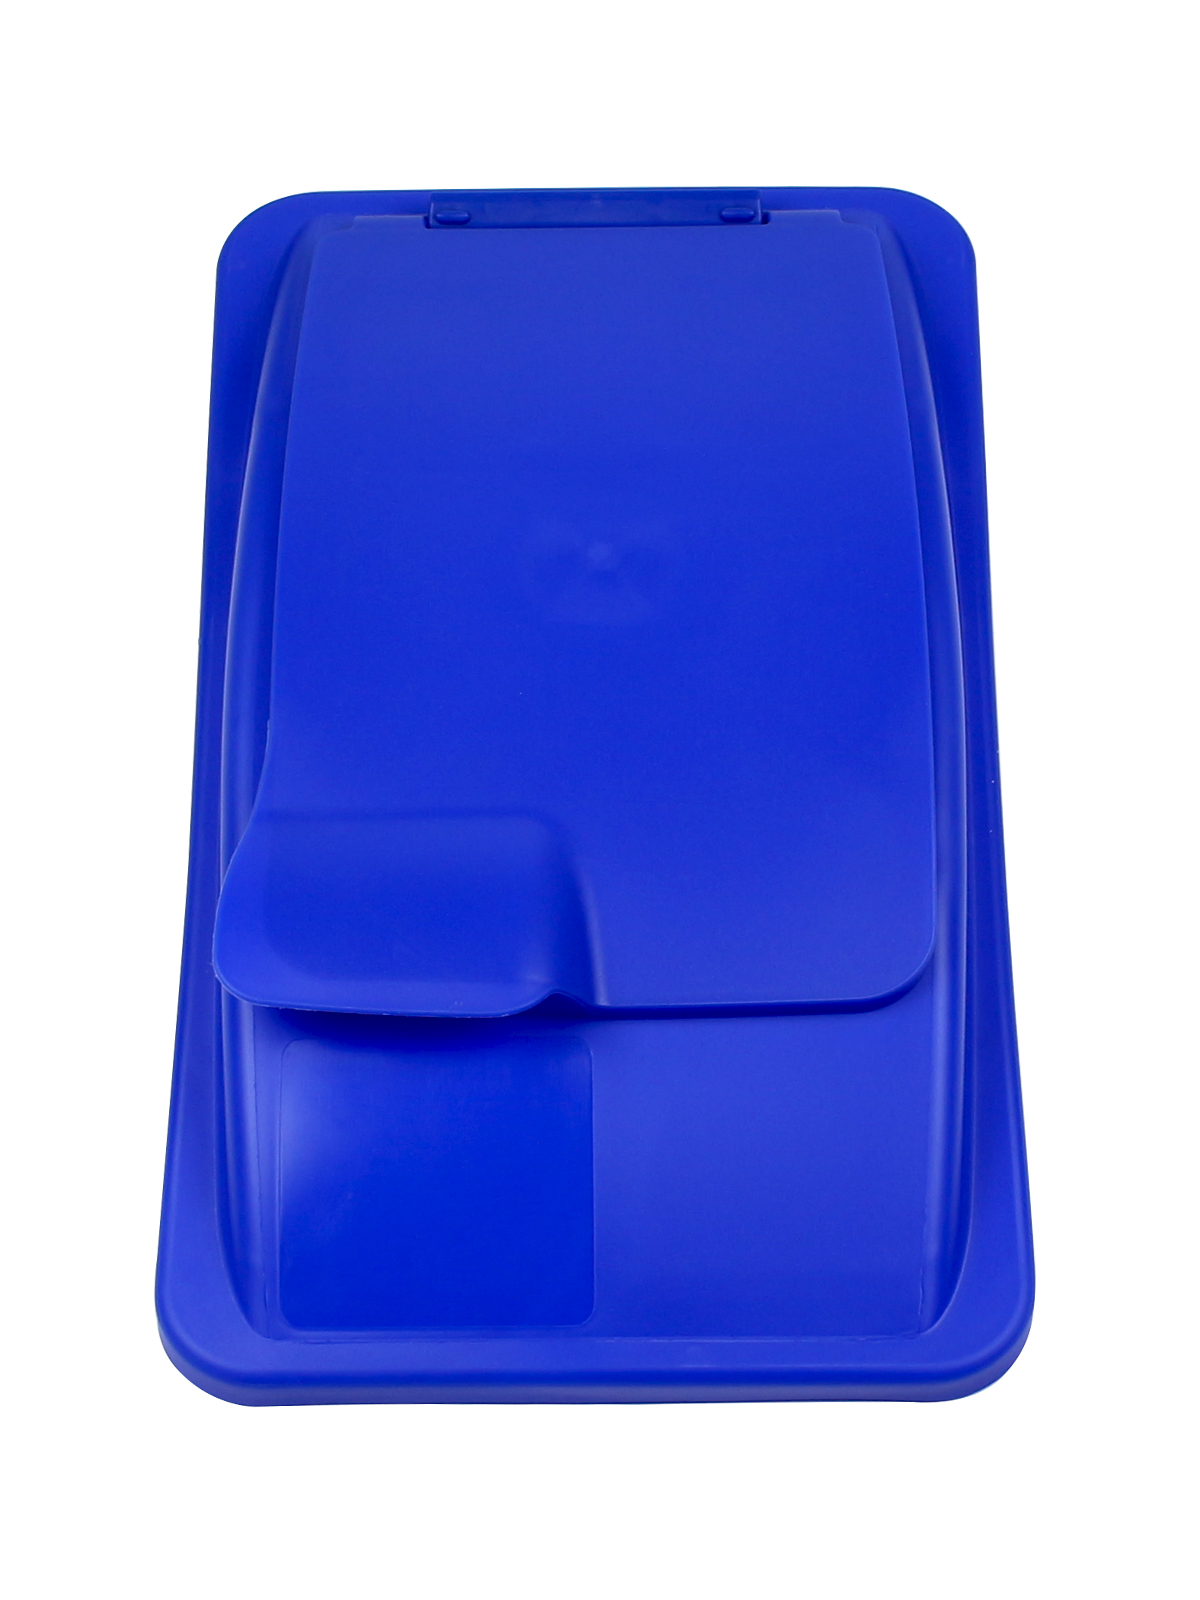 WASTE WATCHER - Single - Lid - Solid Lift - Royal Blue